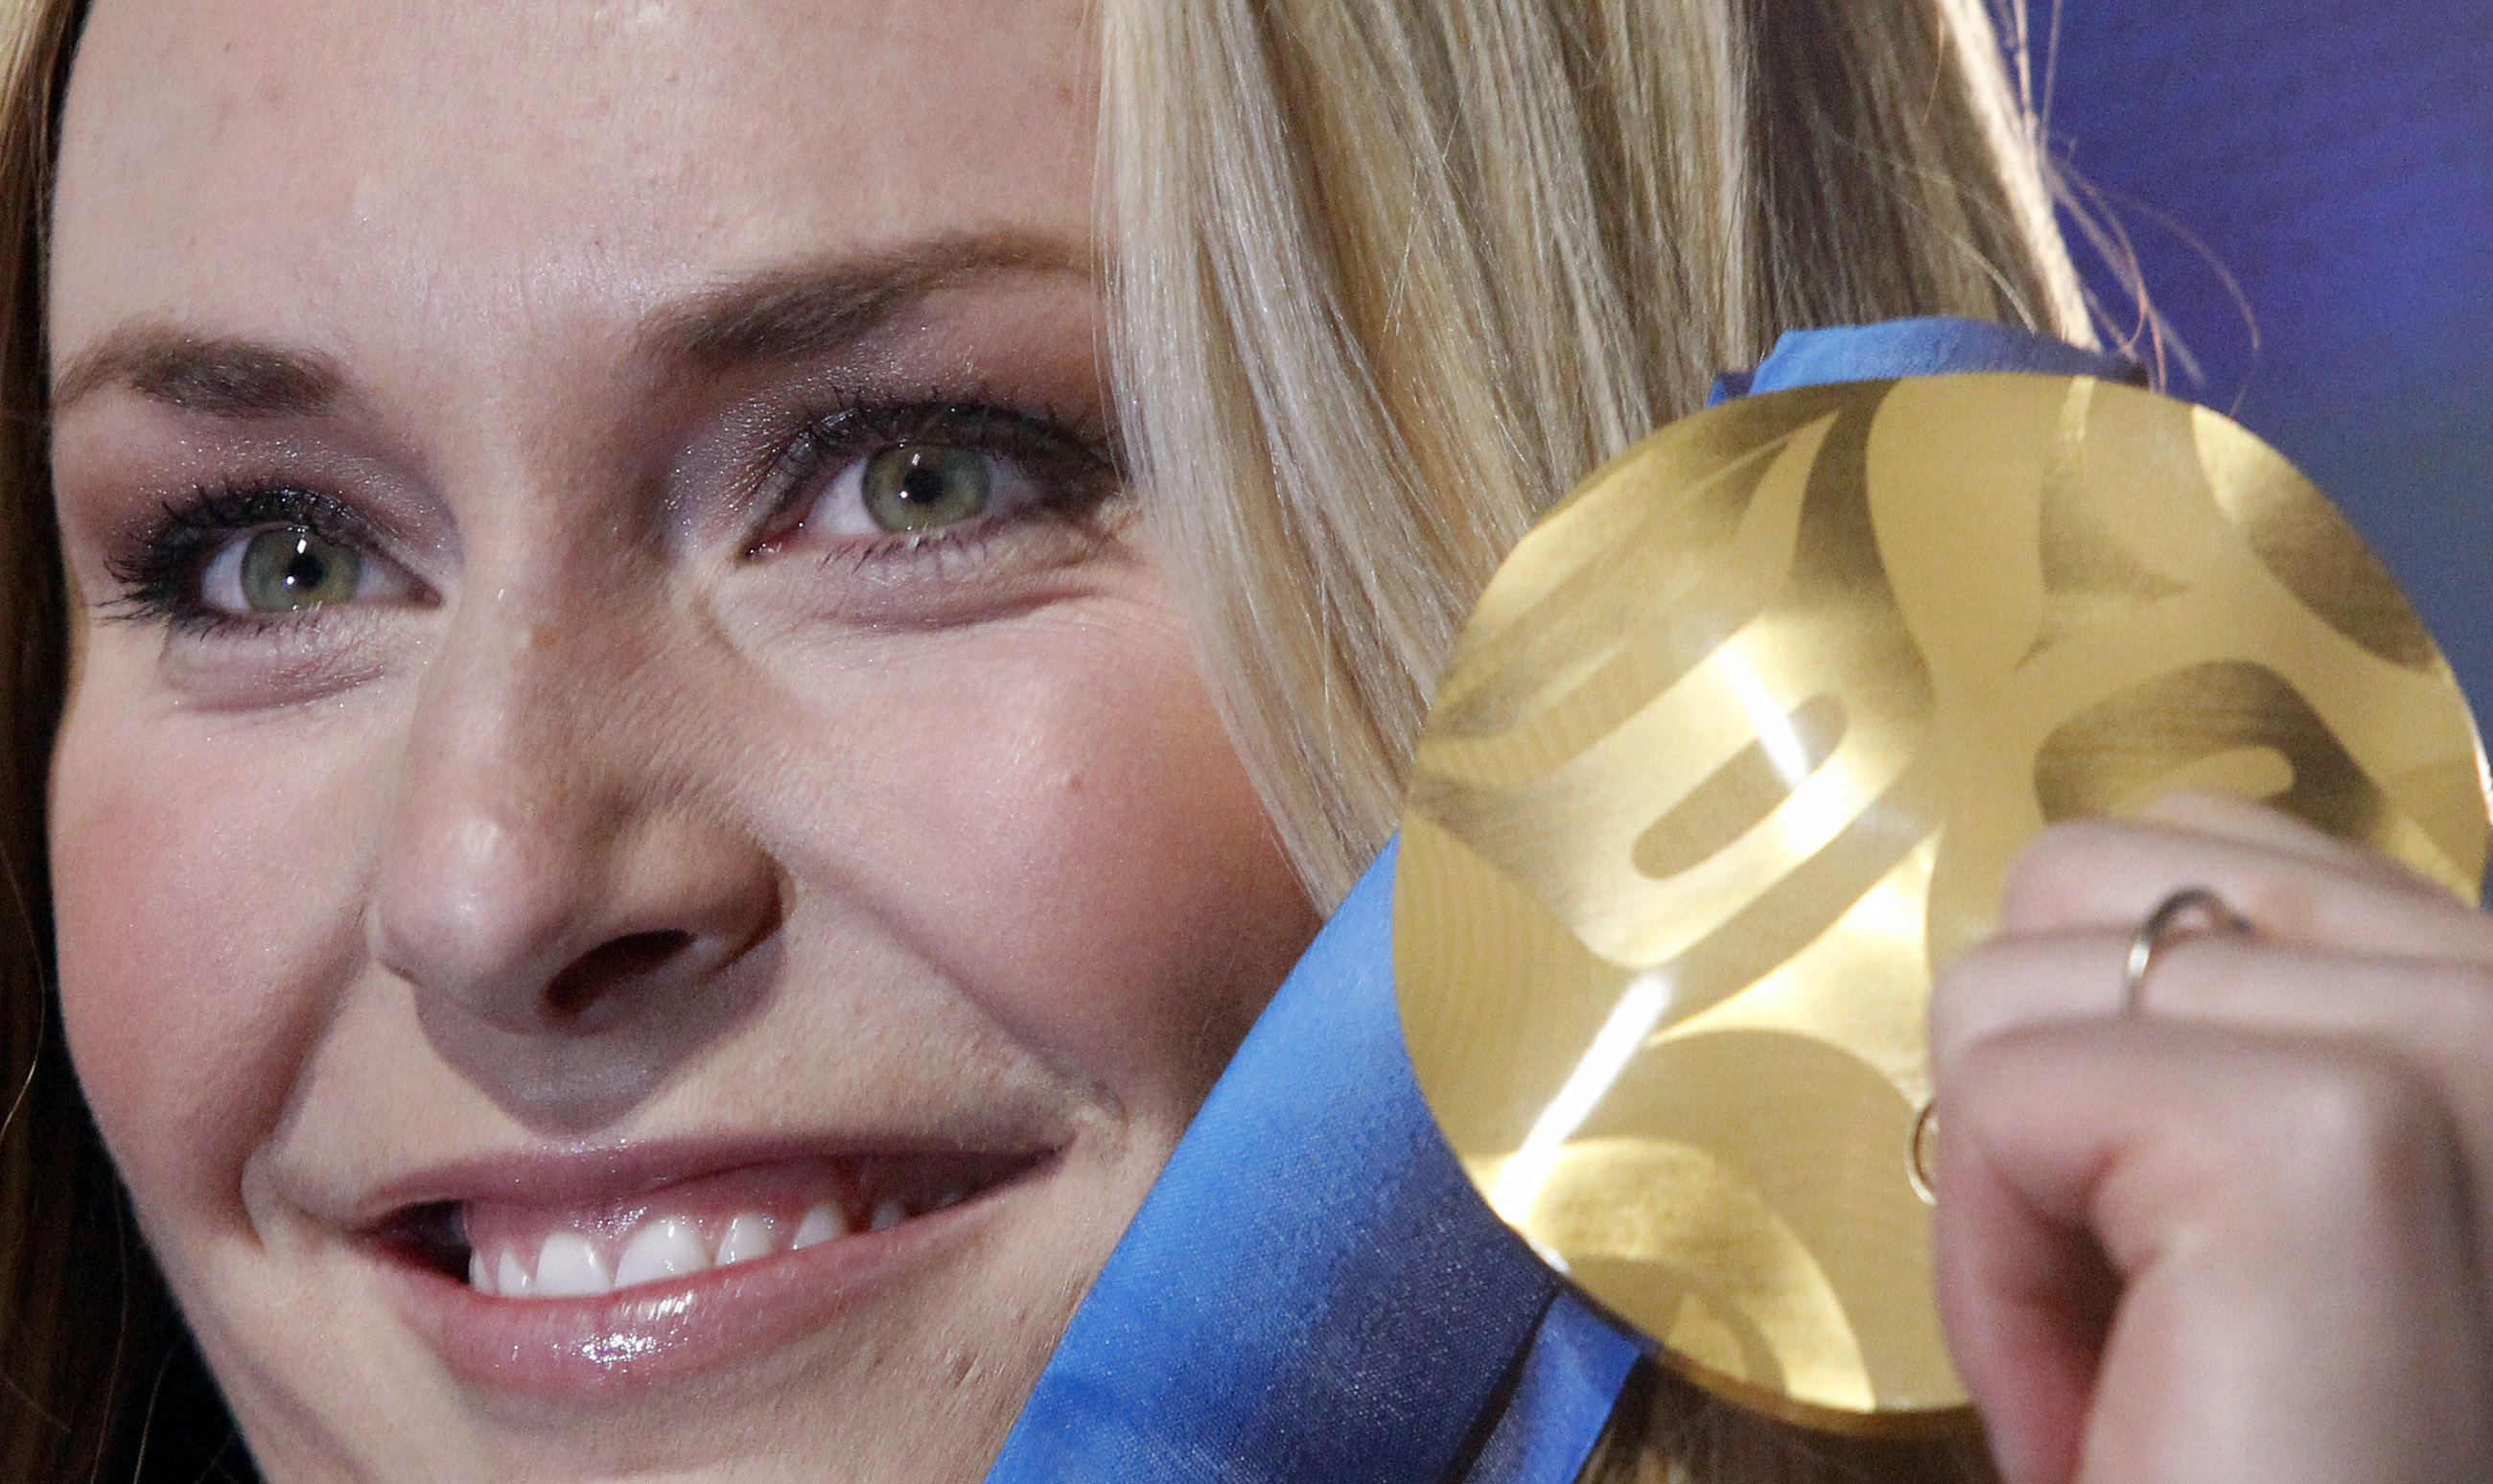 FILE - In this Feb. 17, 2010, file photo, Lindsey Vonn of the United States, shows the gold medal she won in the Women's downhill, during the medal ceremony at the Vancouver 2010 Olympics in Whistler, British Columbia.  In the twilight of her career, Vonn